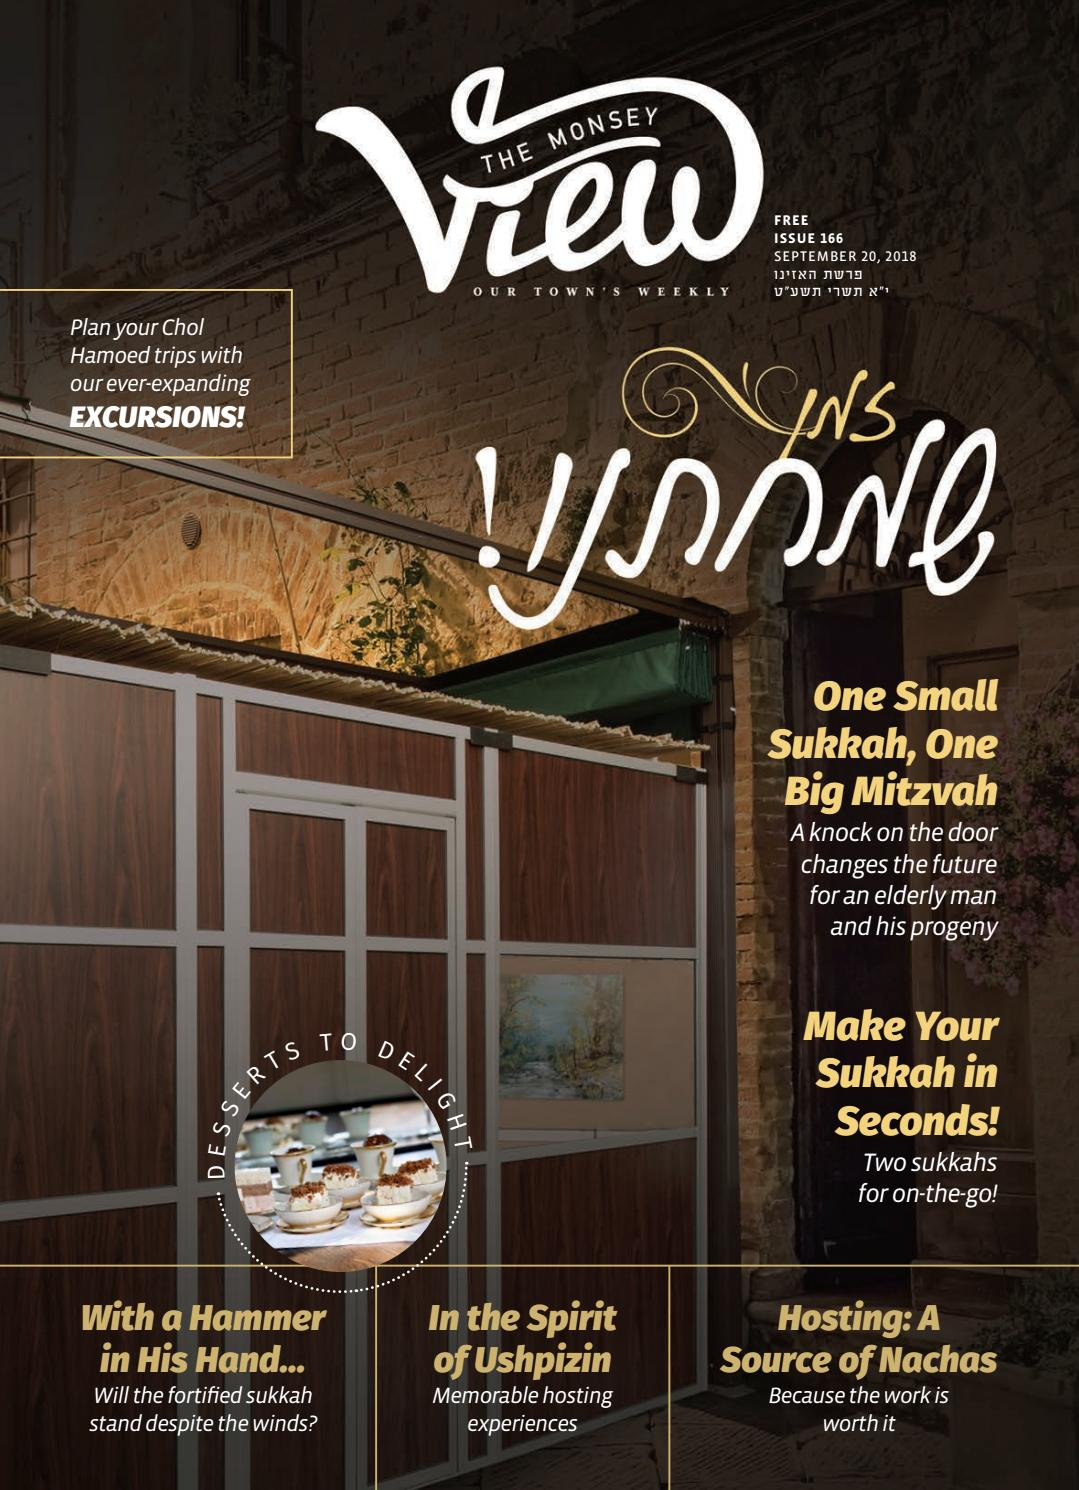 Issue 166 by The Monsey View - issuu